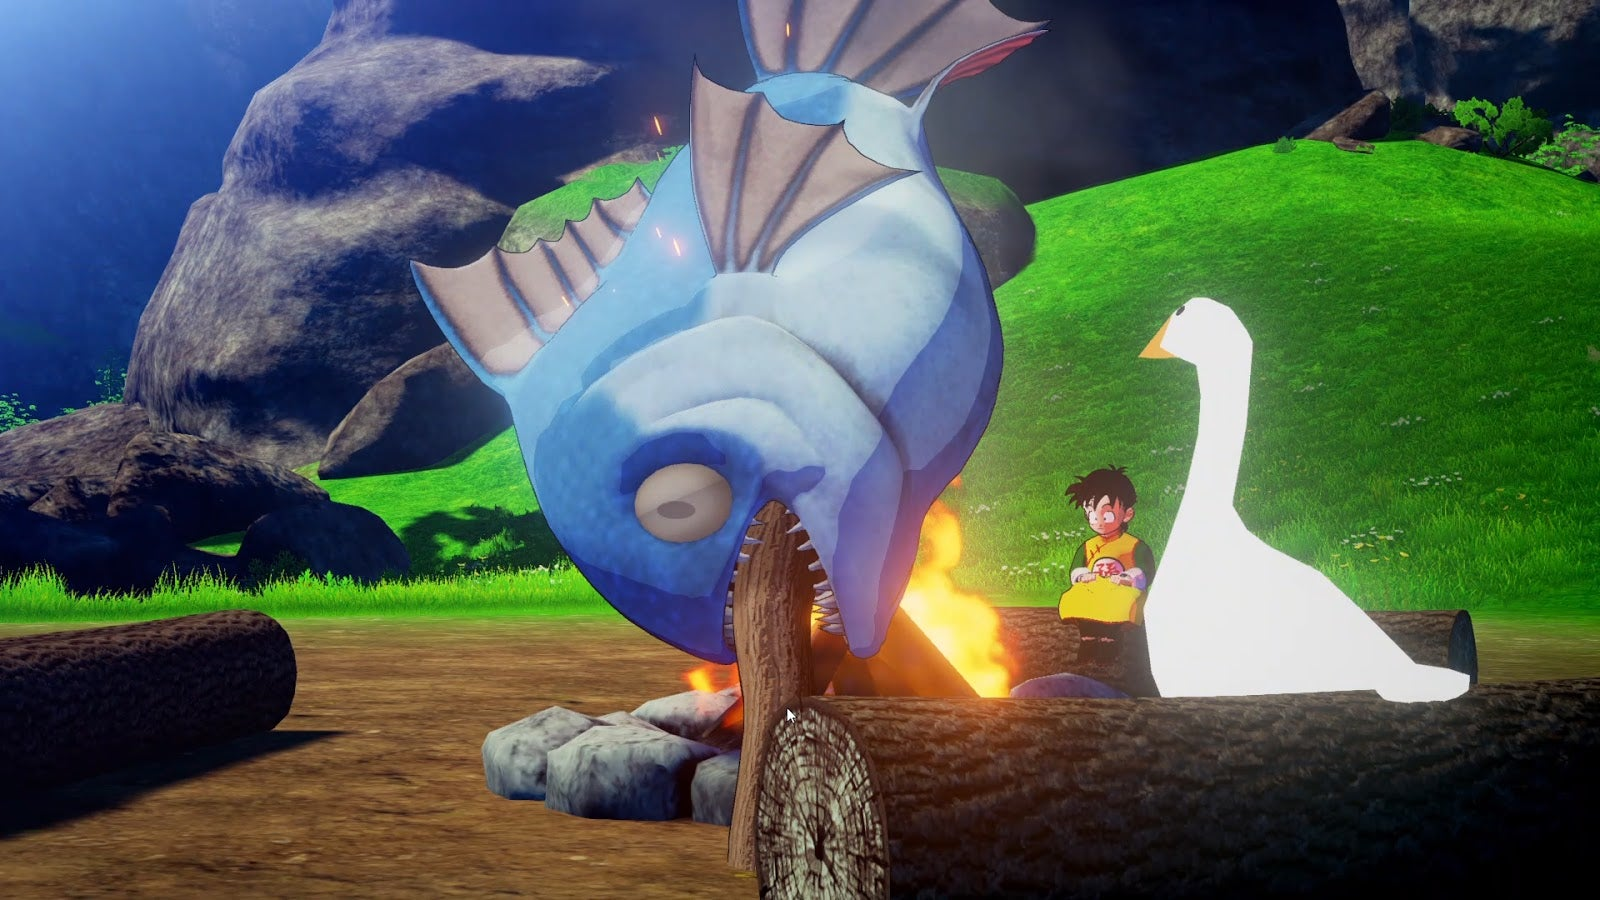 Here's Dragon Ball Z: Kakarot Starring The Goose